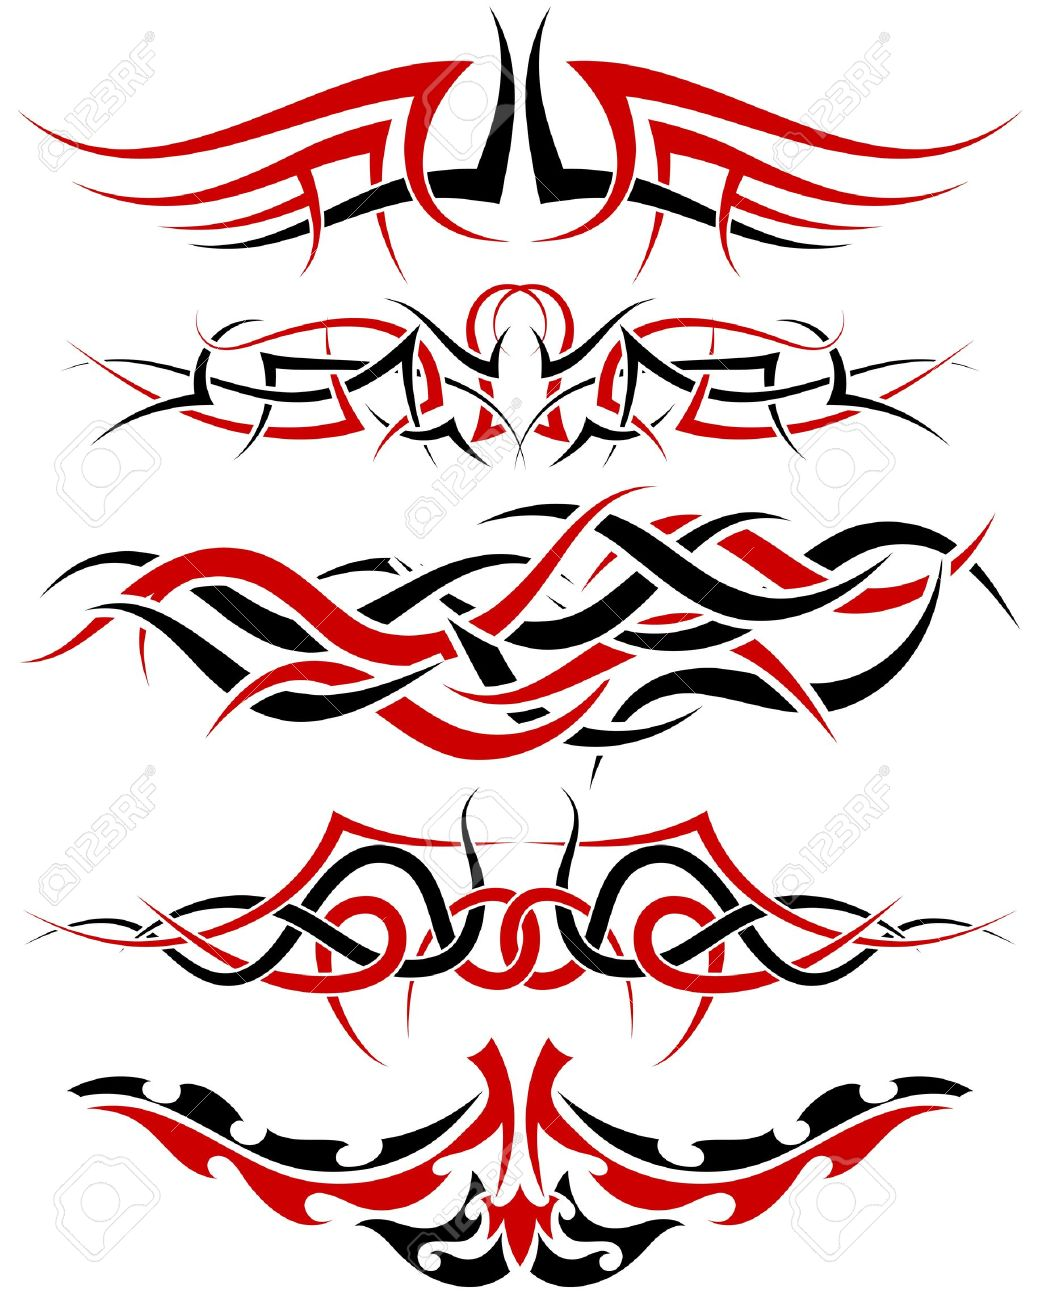 Tribal-Tattoos 9278499-Patterns-of-black-and-red-tribal-tattoo-for-design-use-Stock-Vector